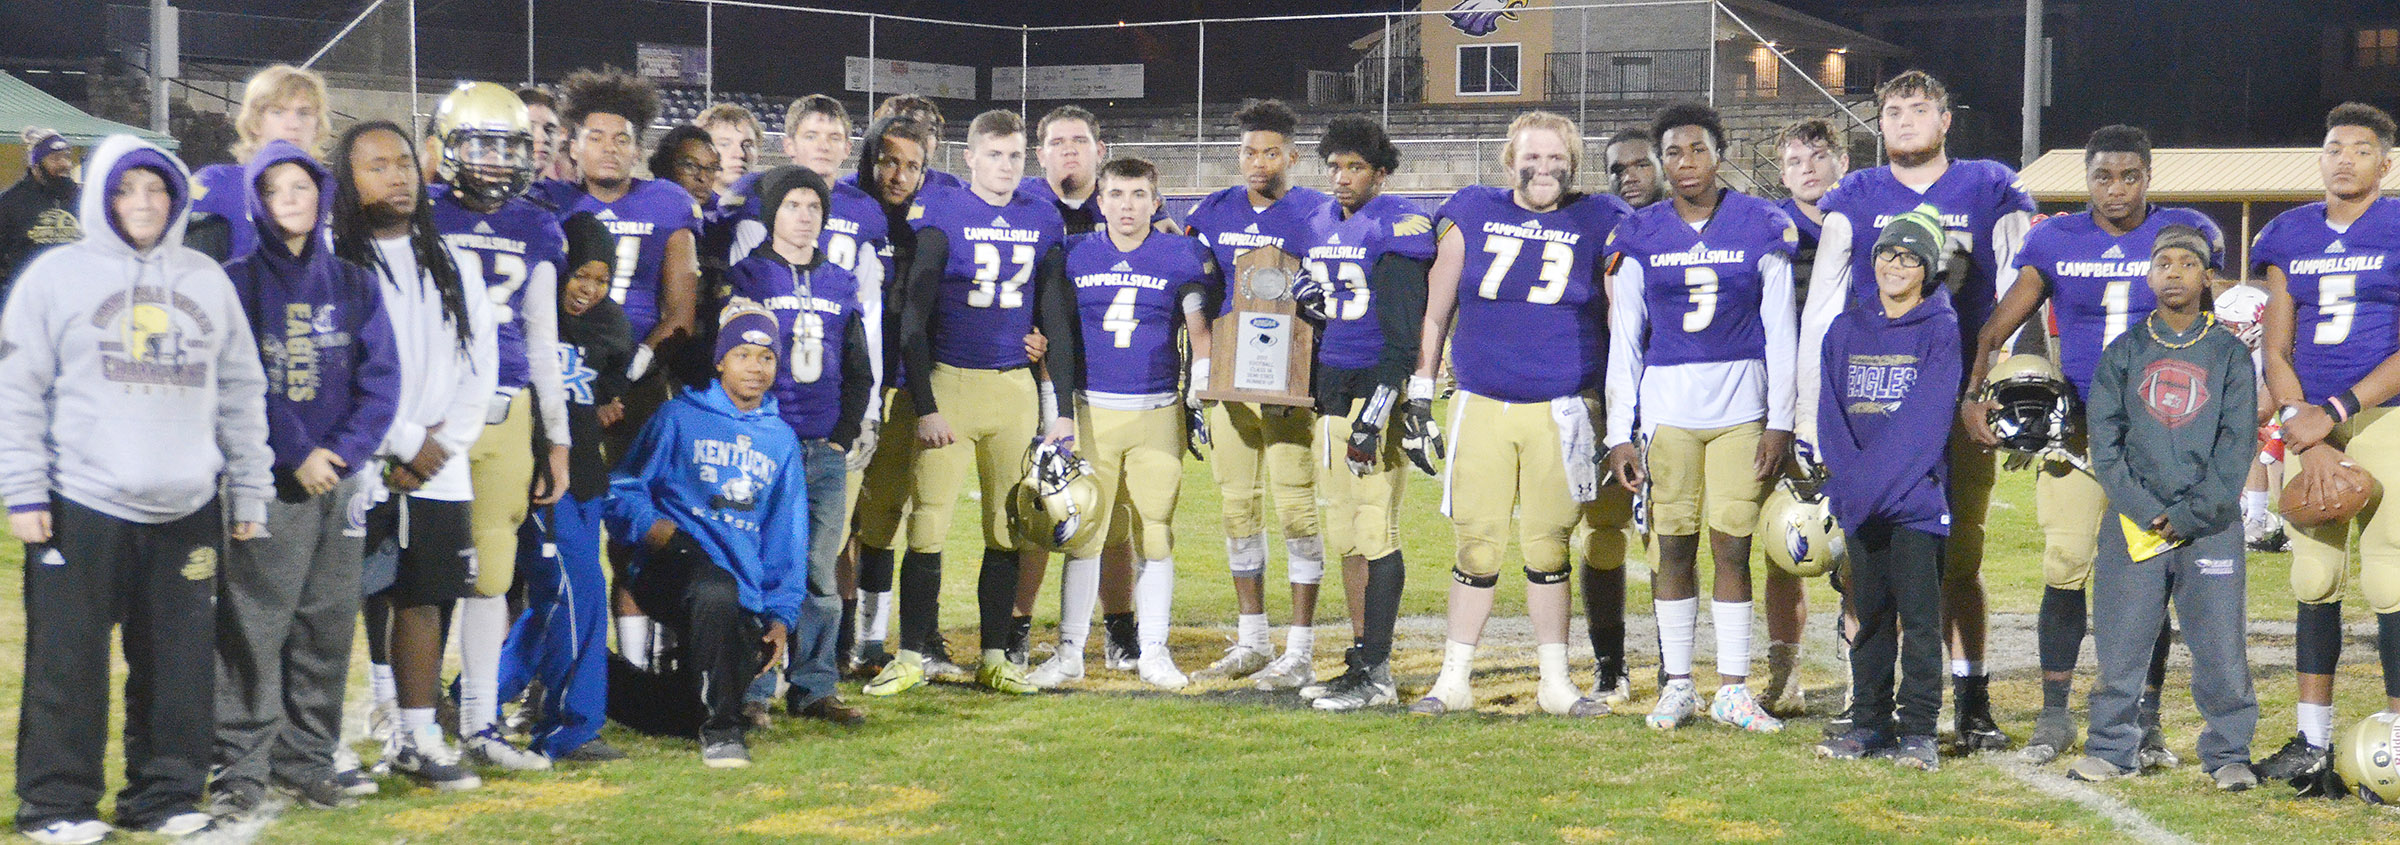 CHS football players receive their semi-finals runner-up trophy.